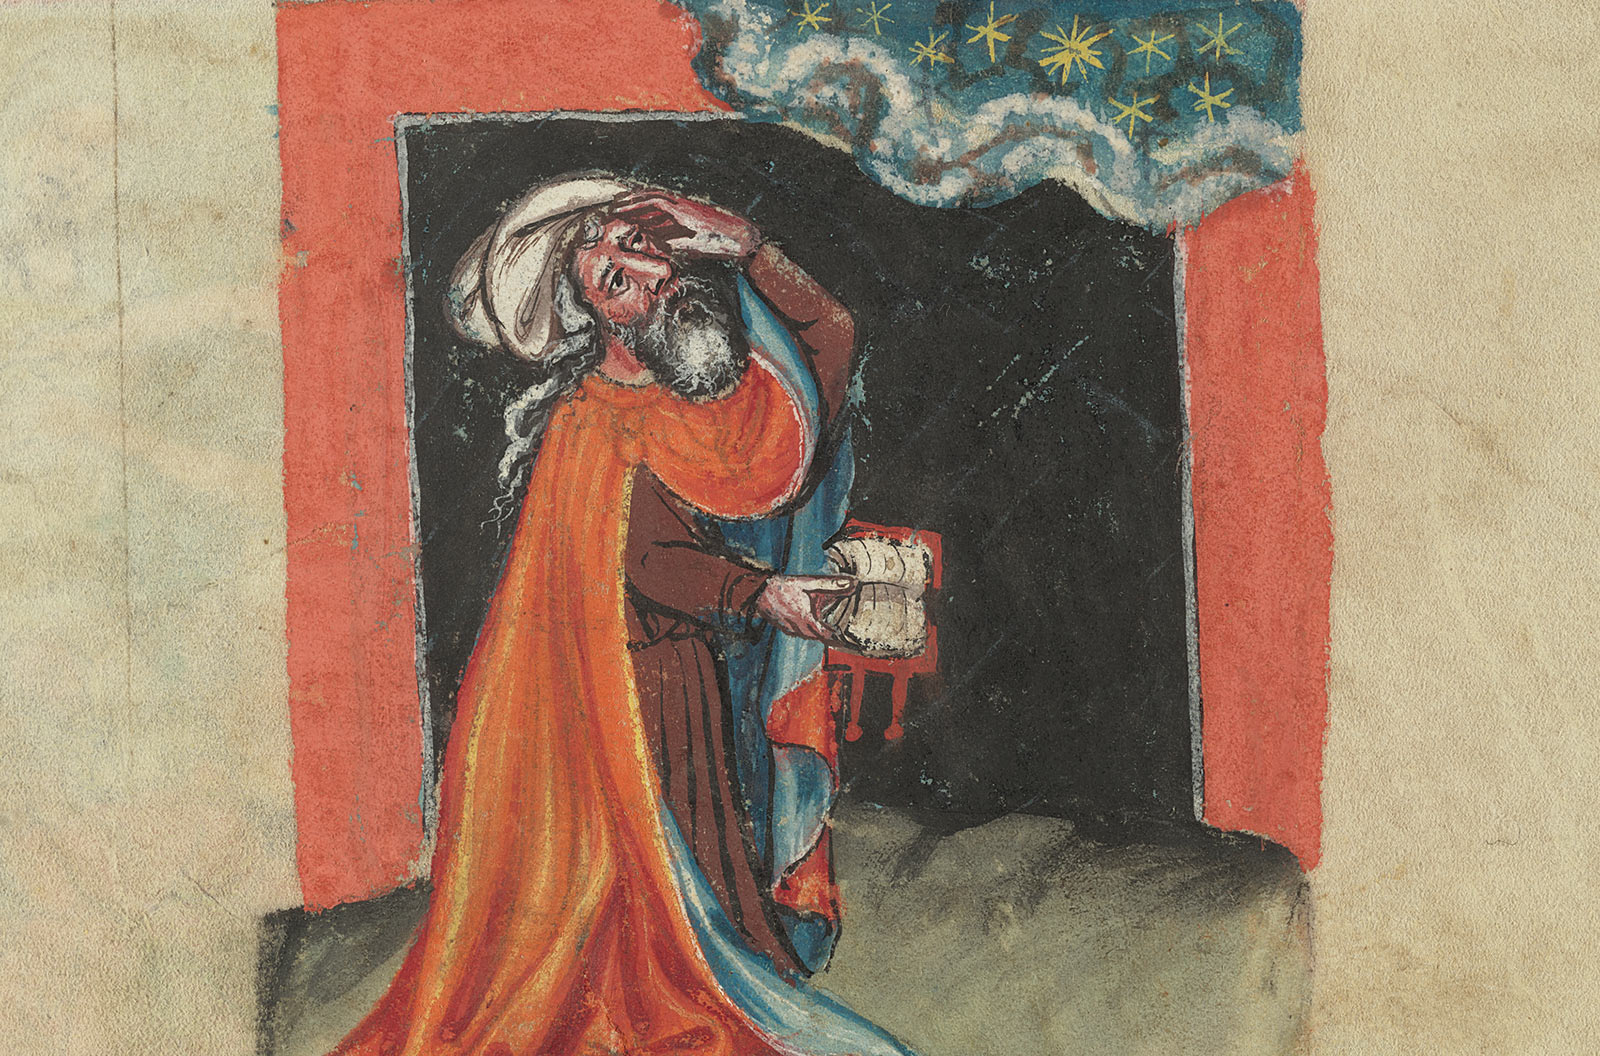 A bearded man wearing a white turban and orange cloak lined with blue holds his left hand to his head and a book in his right hand while he peers up at the sky.